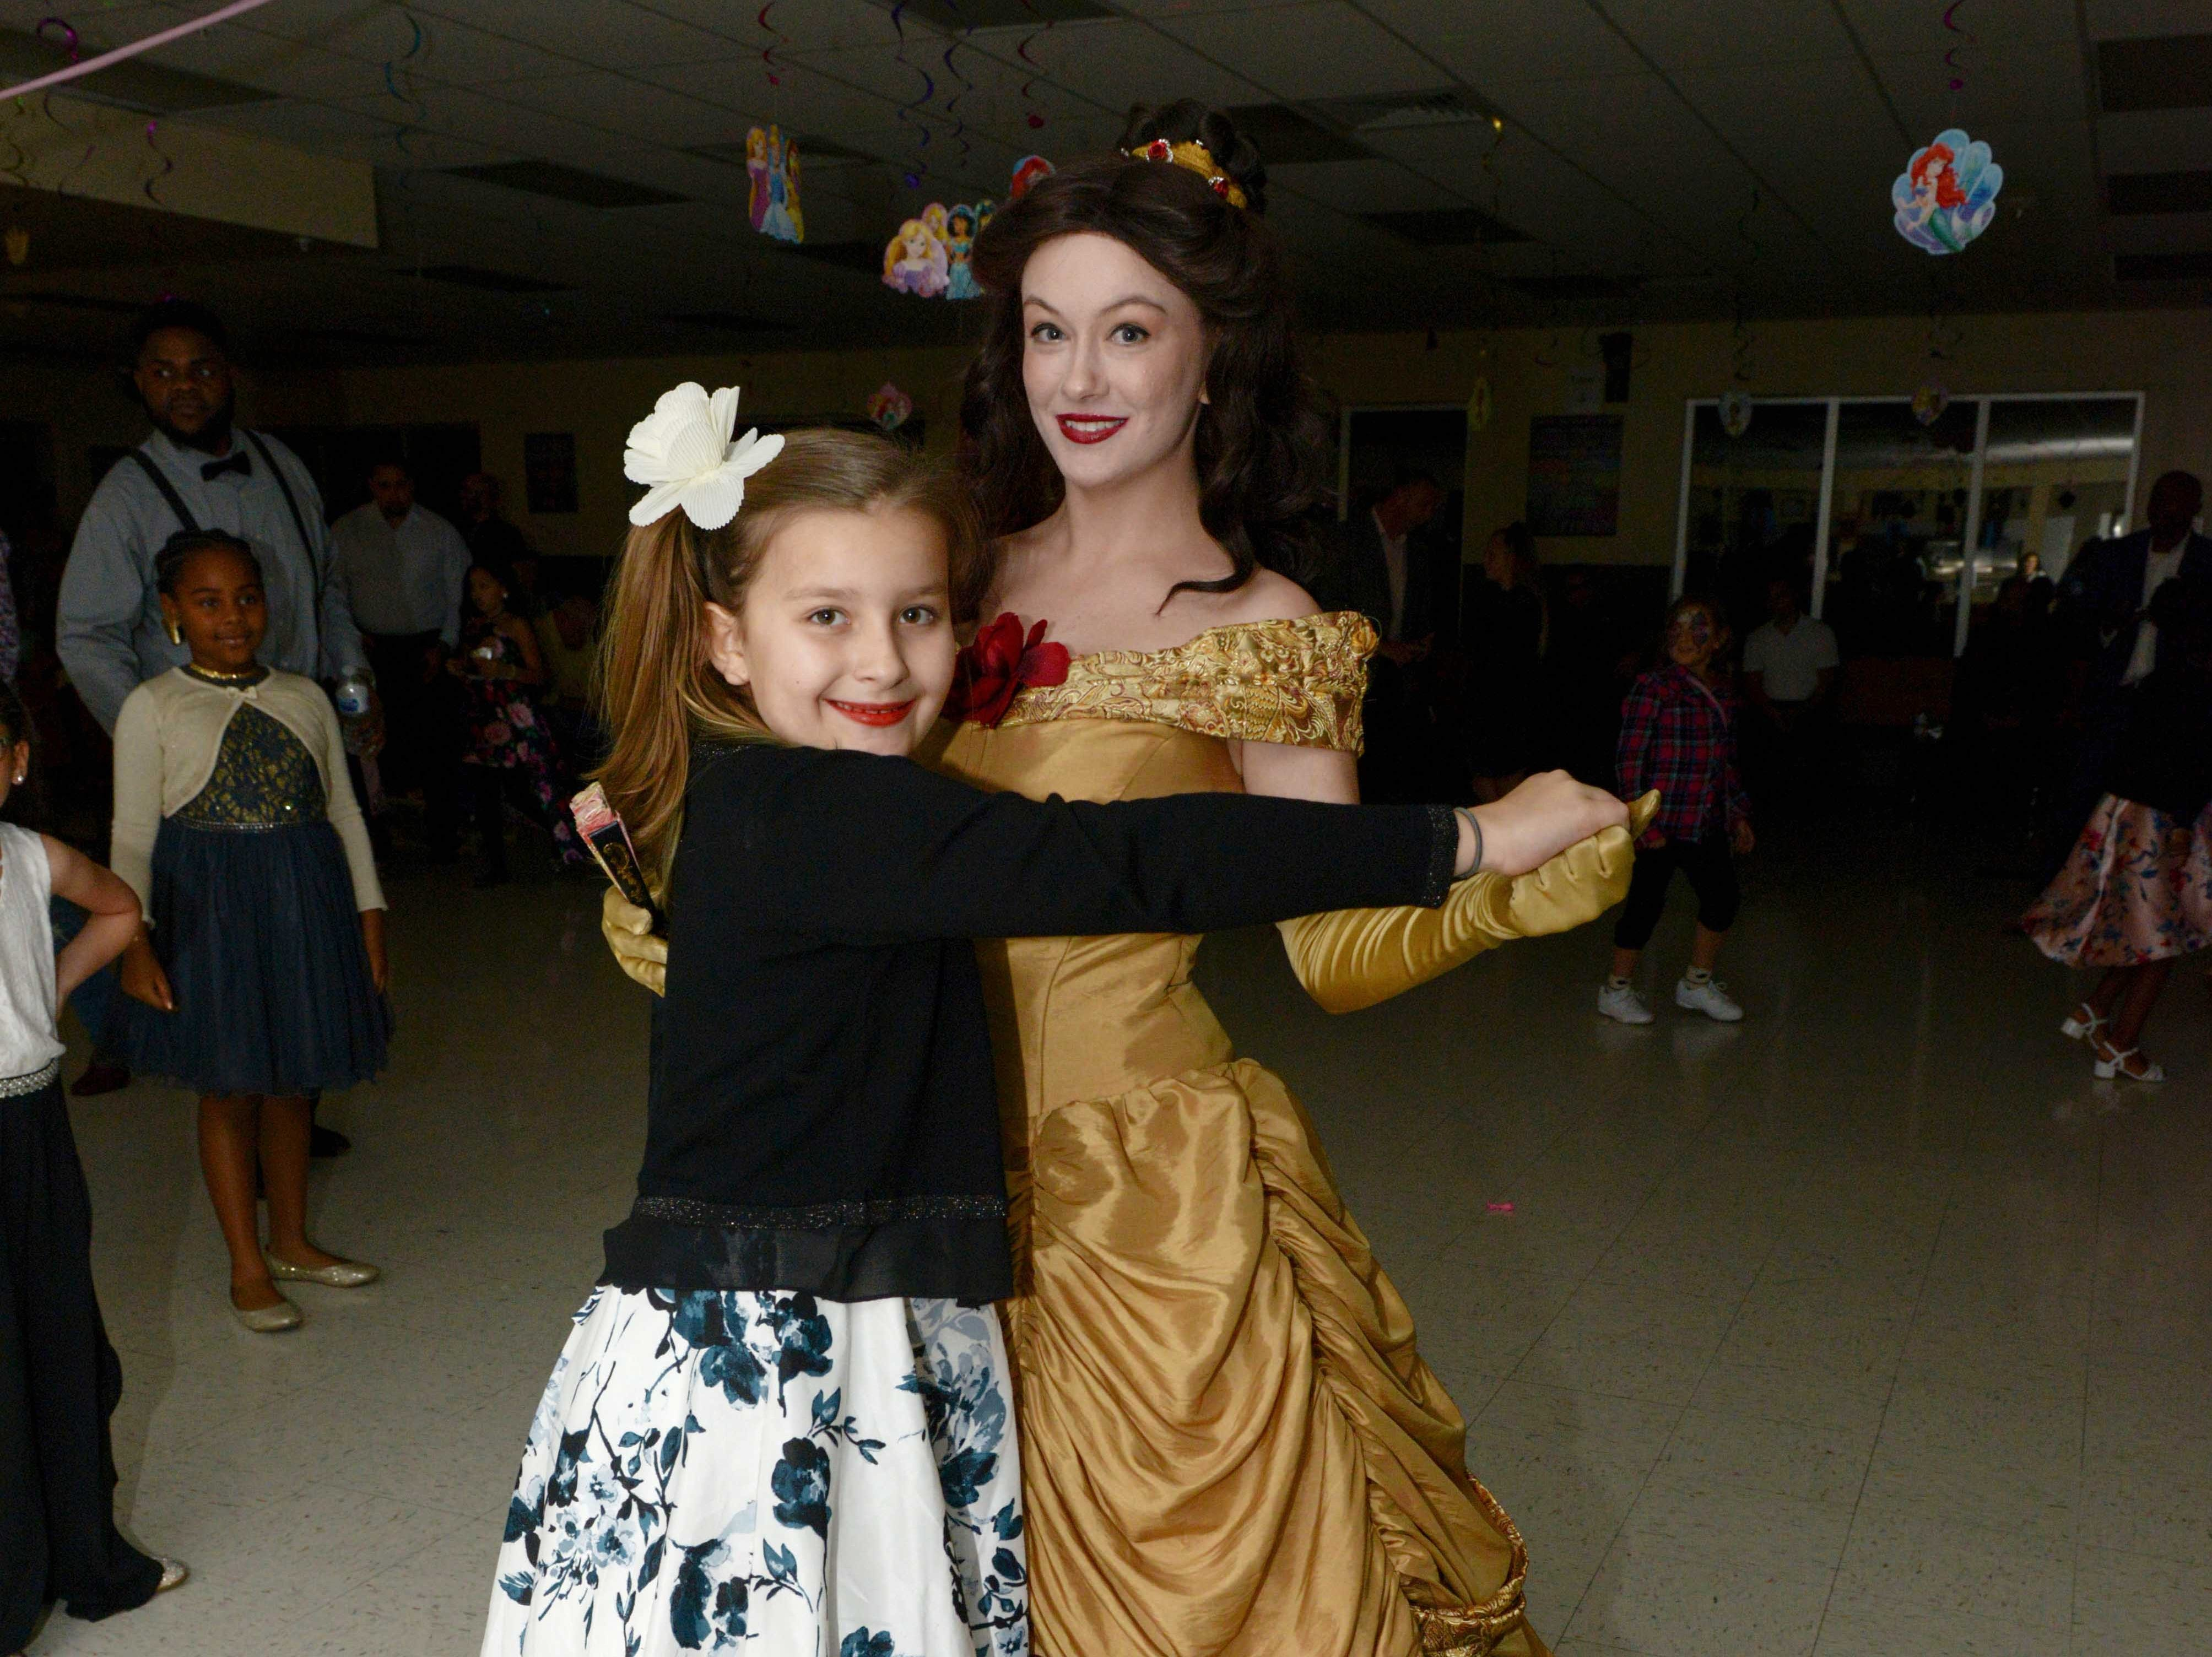 Jada LaCarte dances with Princess Belle at the Father/Daughter/Someone Special Dance at Renaissance Charter School of St. Lucie.